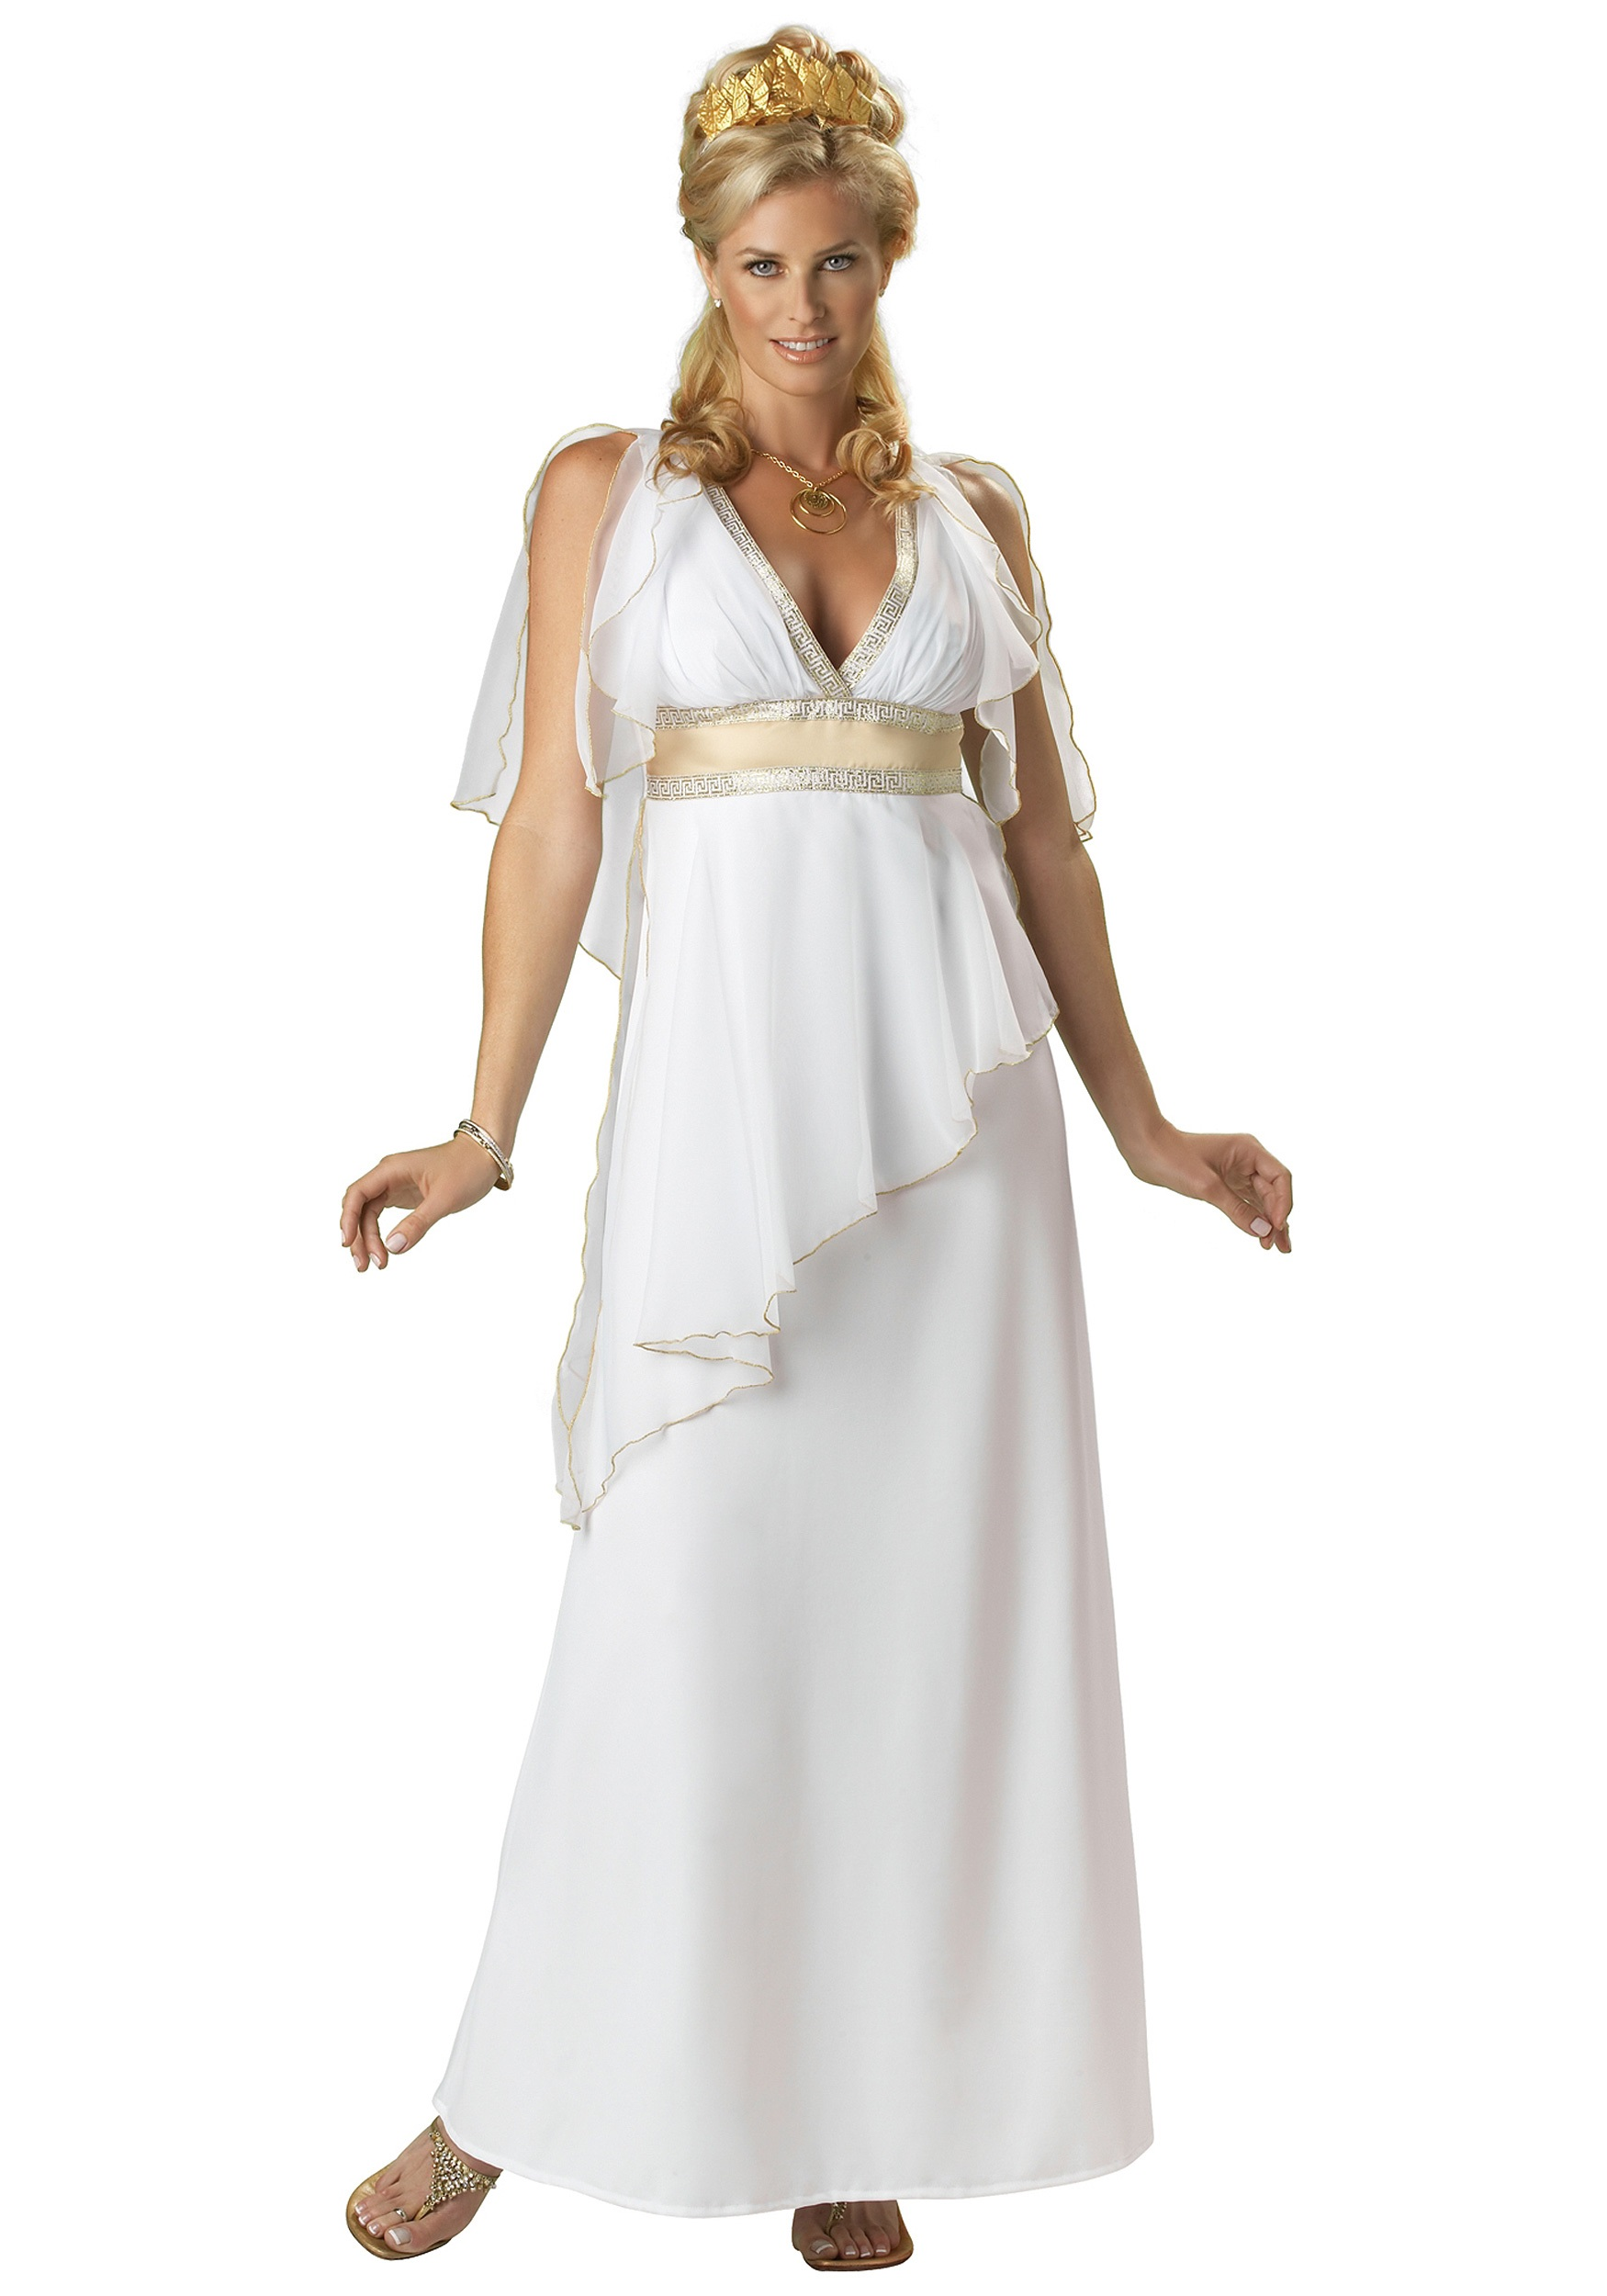 sc 1 st  Halloween Costumes & Divine Greek Goddess Costume - Halloween Costume Ideas 2016